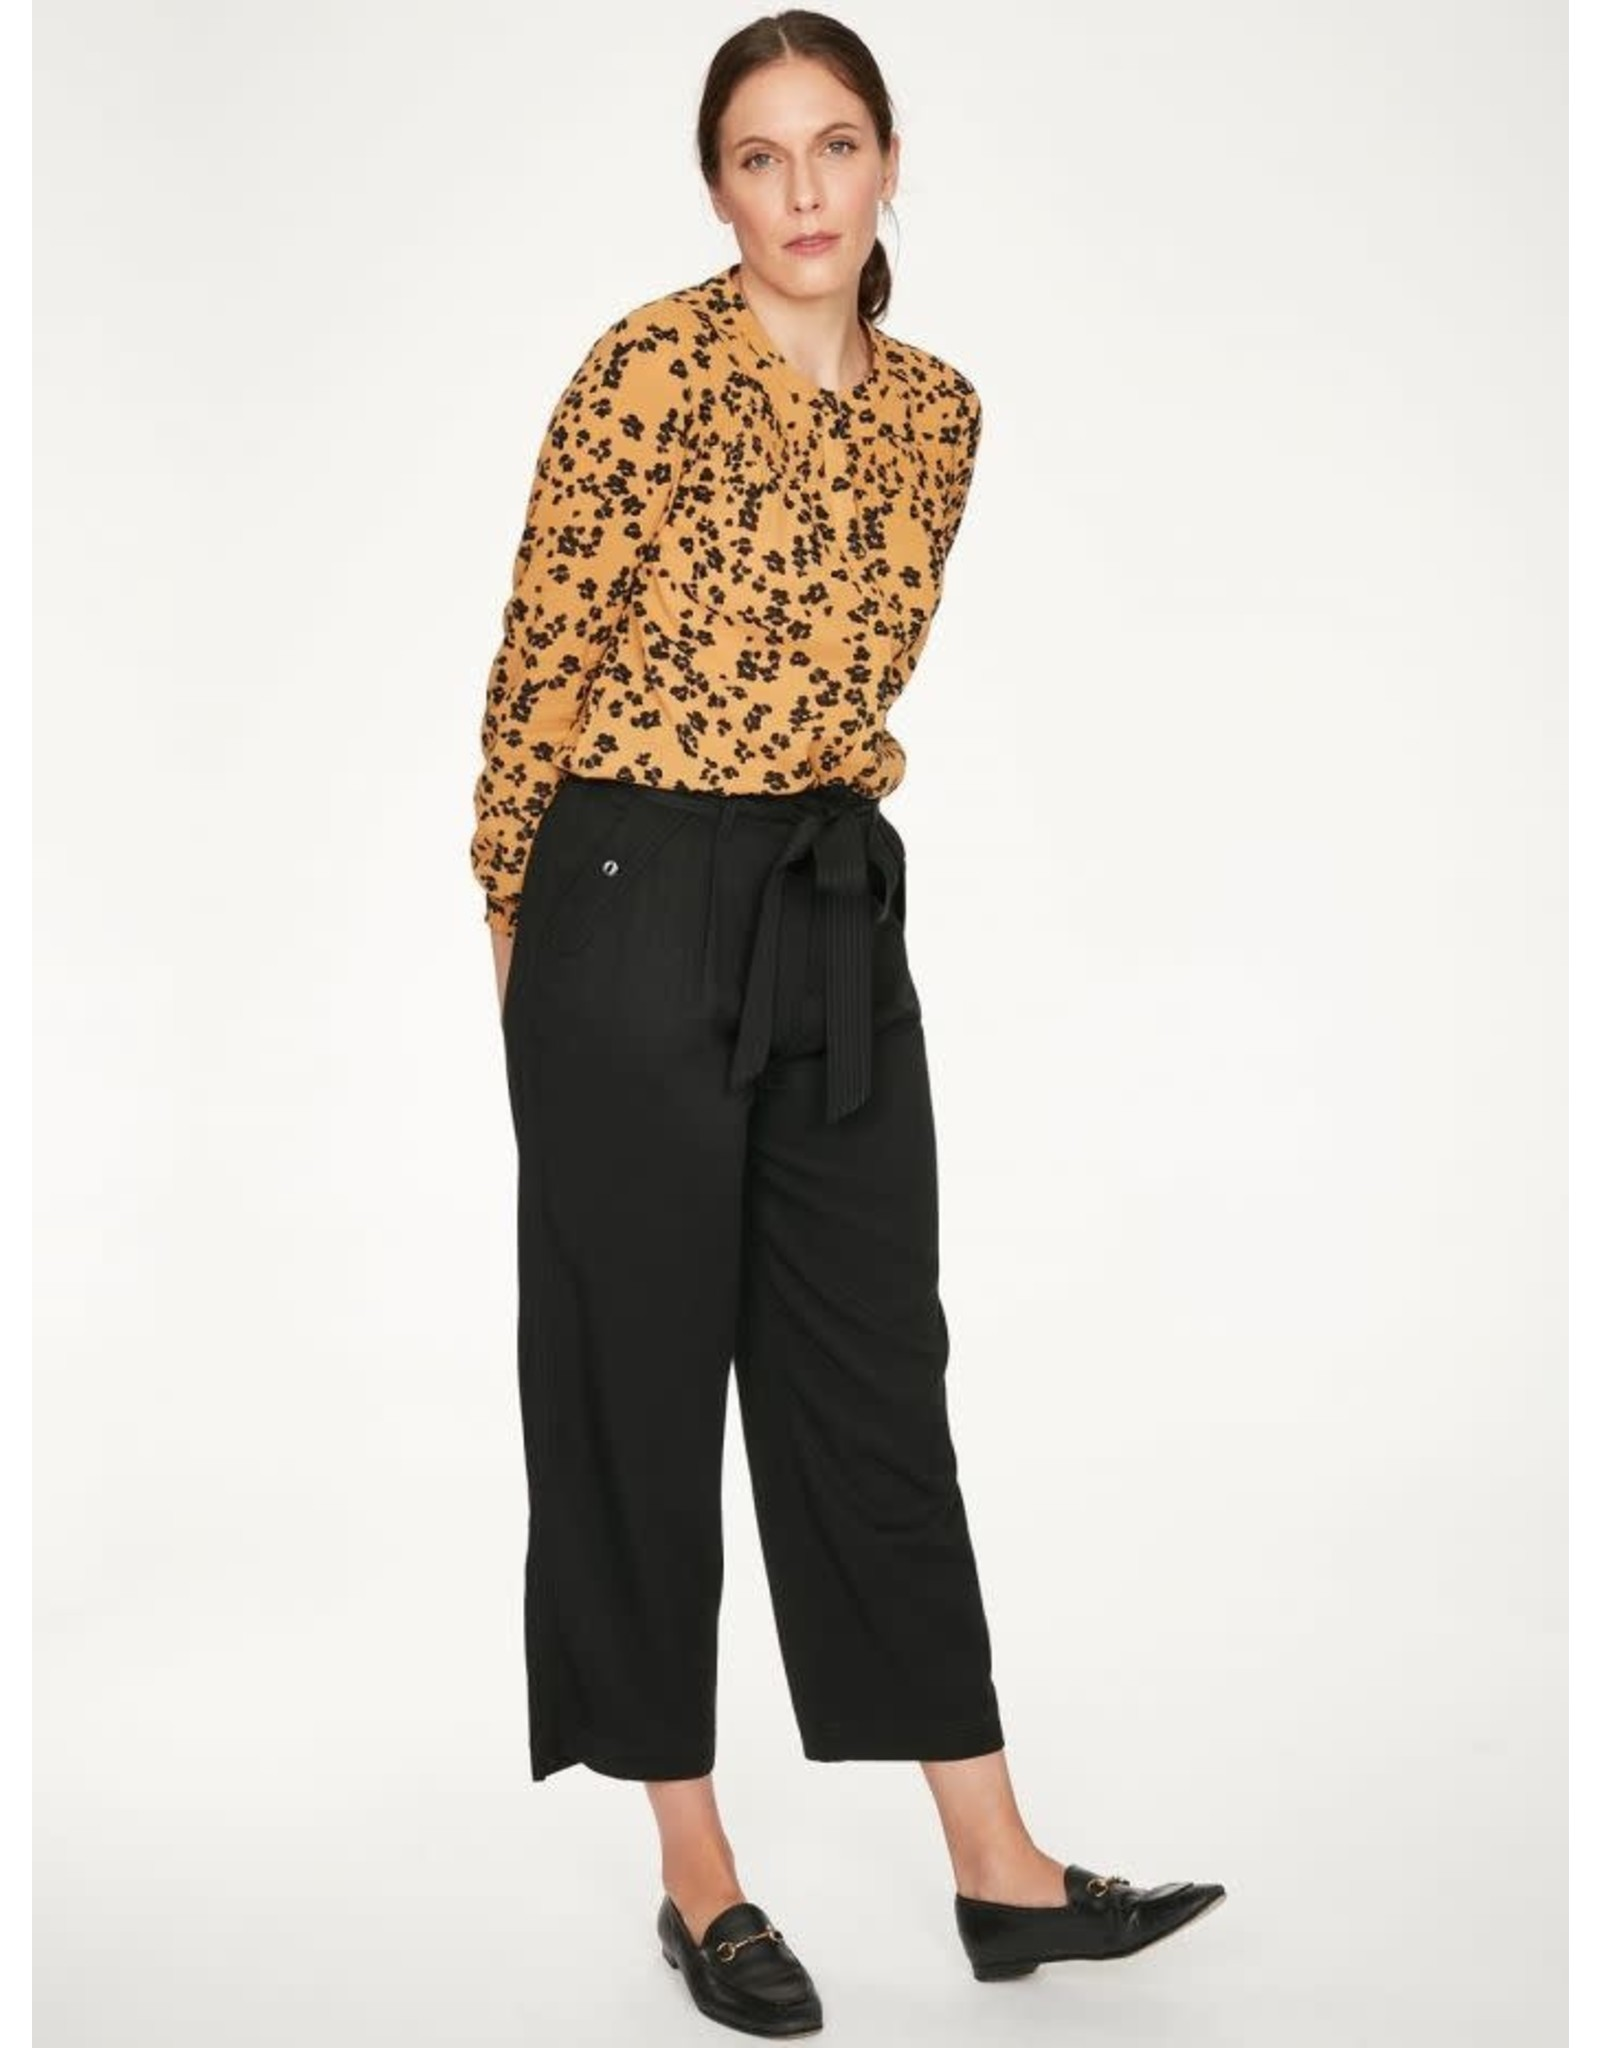 Thought Thought Jekyll Blouse